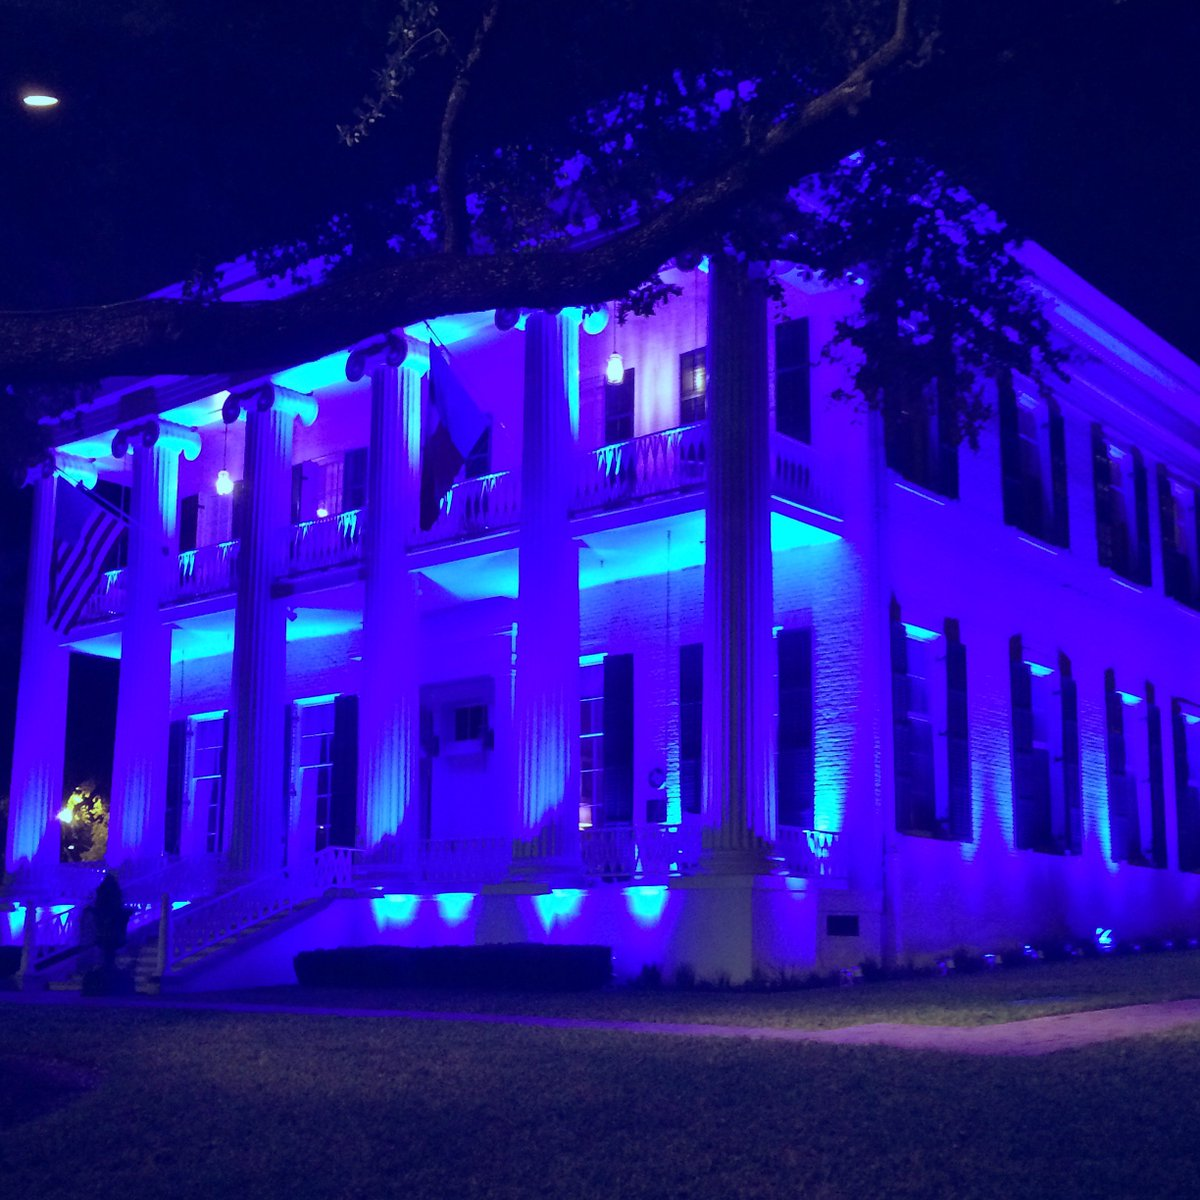 Tonight the #Texas Governor's Mansion will be lit blue to honor our law enforcement #DallasPoliceShooting https://t.co/tYFIeHv8Qx